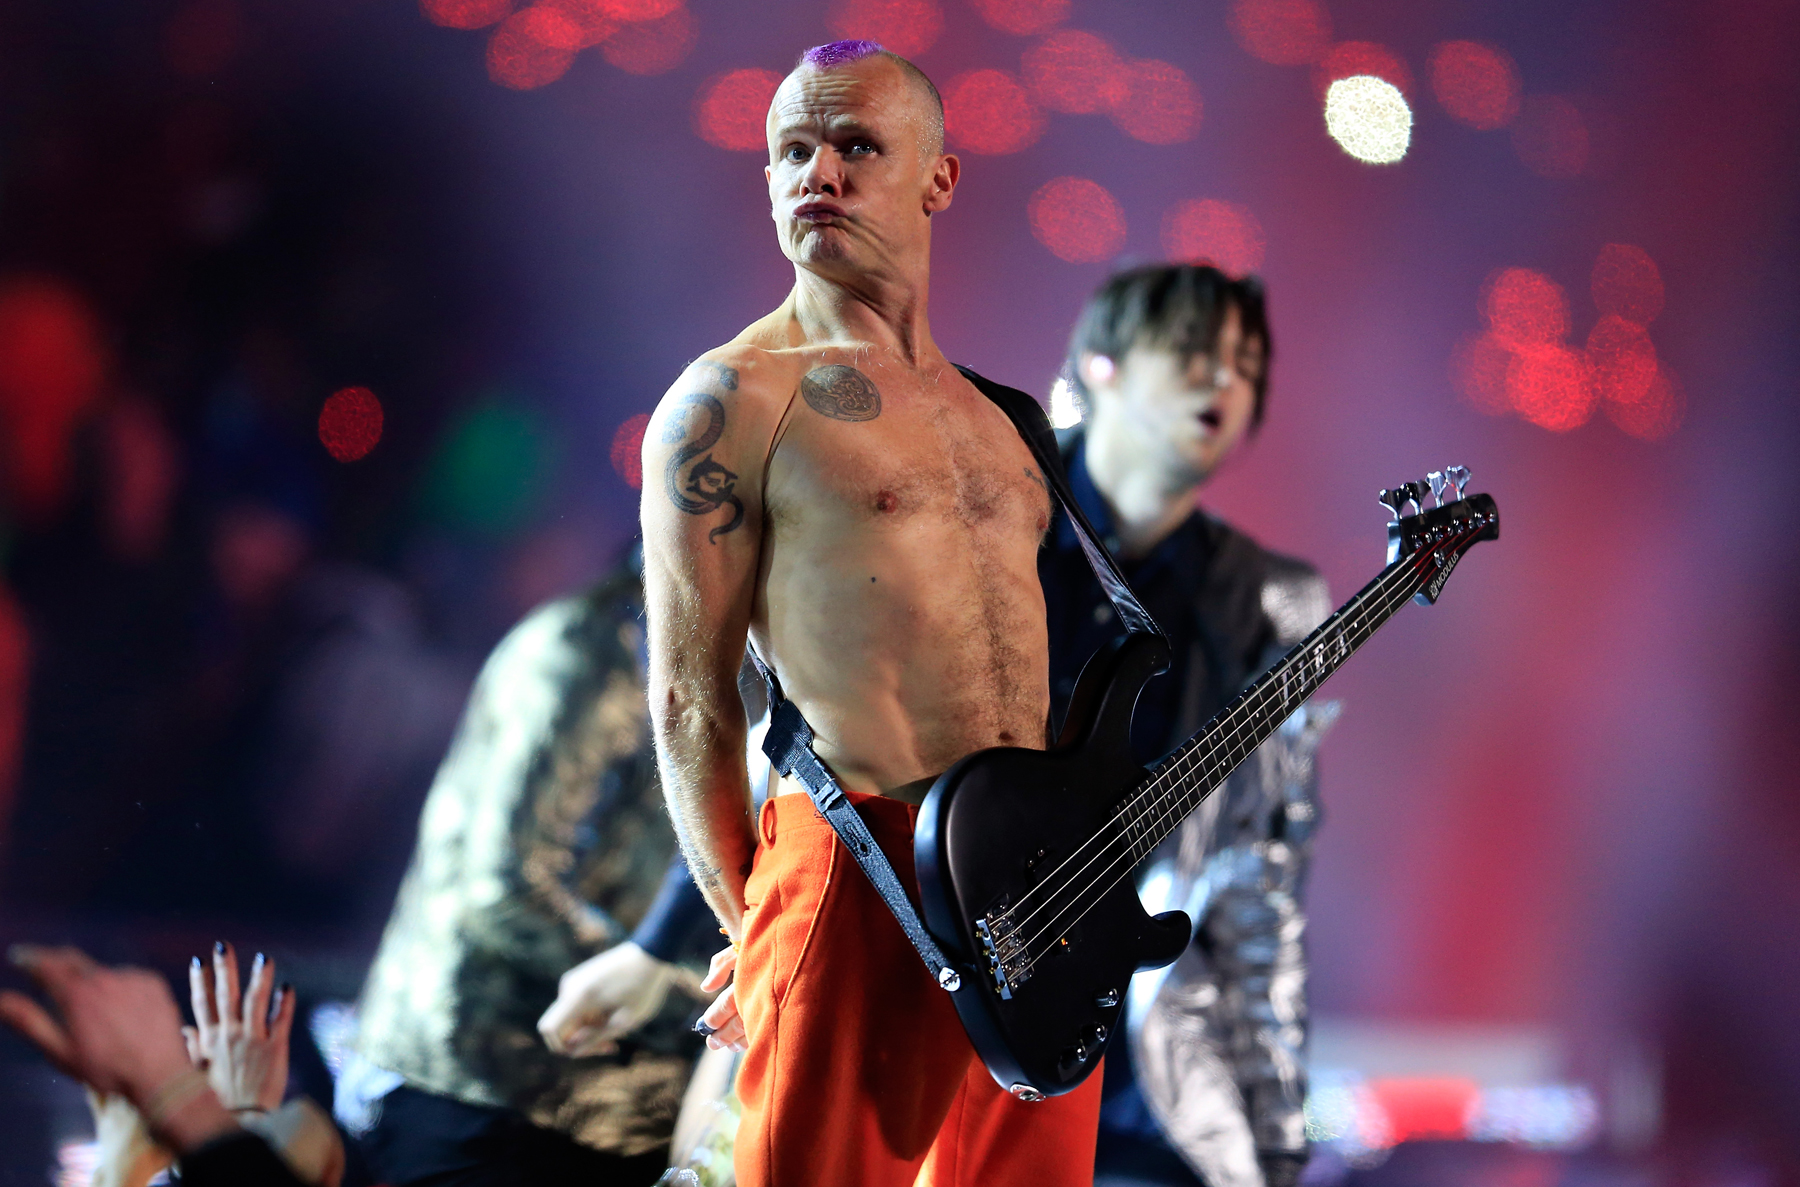 Red Hot Chili Peppers' Flea Explains Band's 'Miming' at the Super Bowl